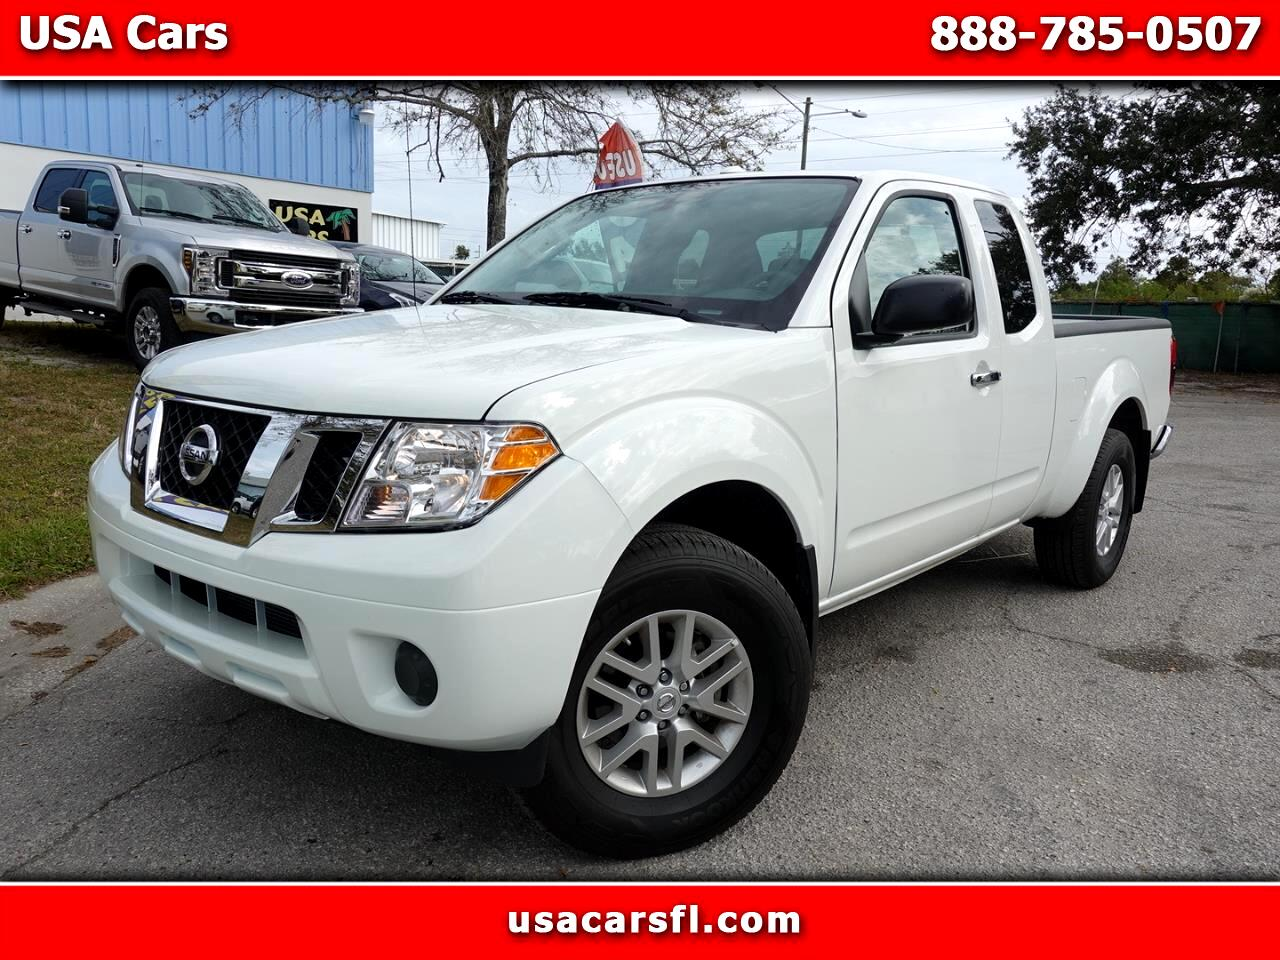 2018 Nissan Frontier King Cab 4x4 SV V6 Auto